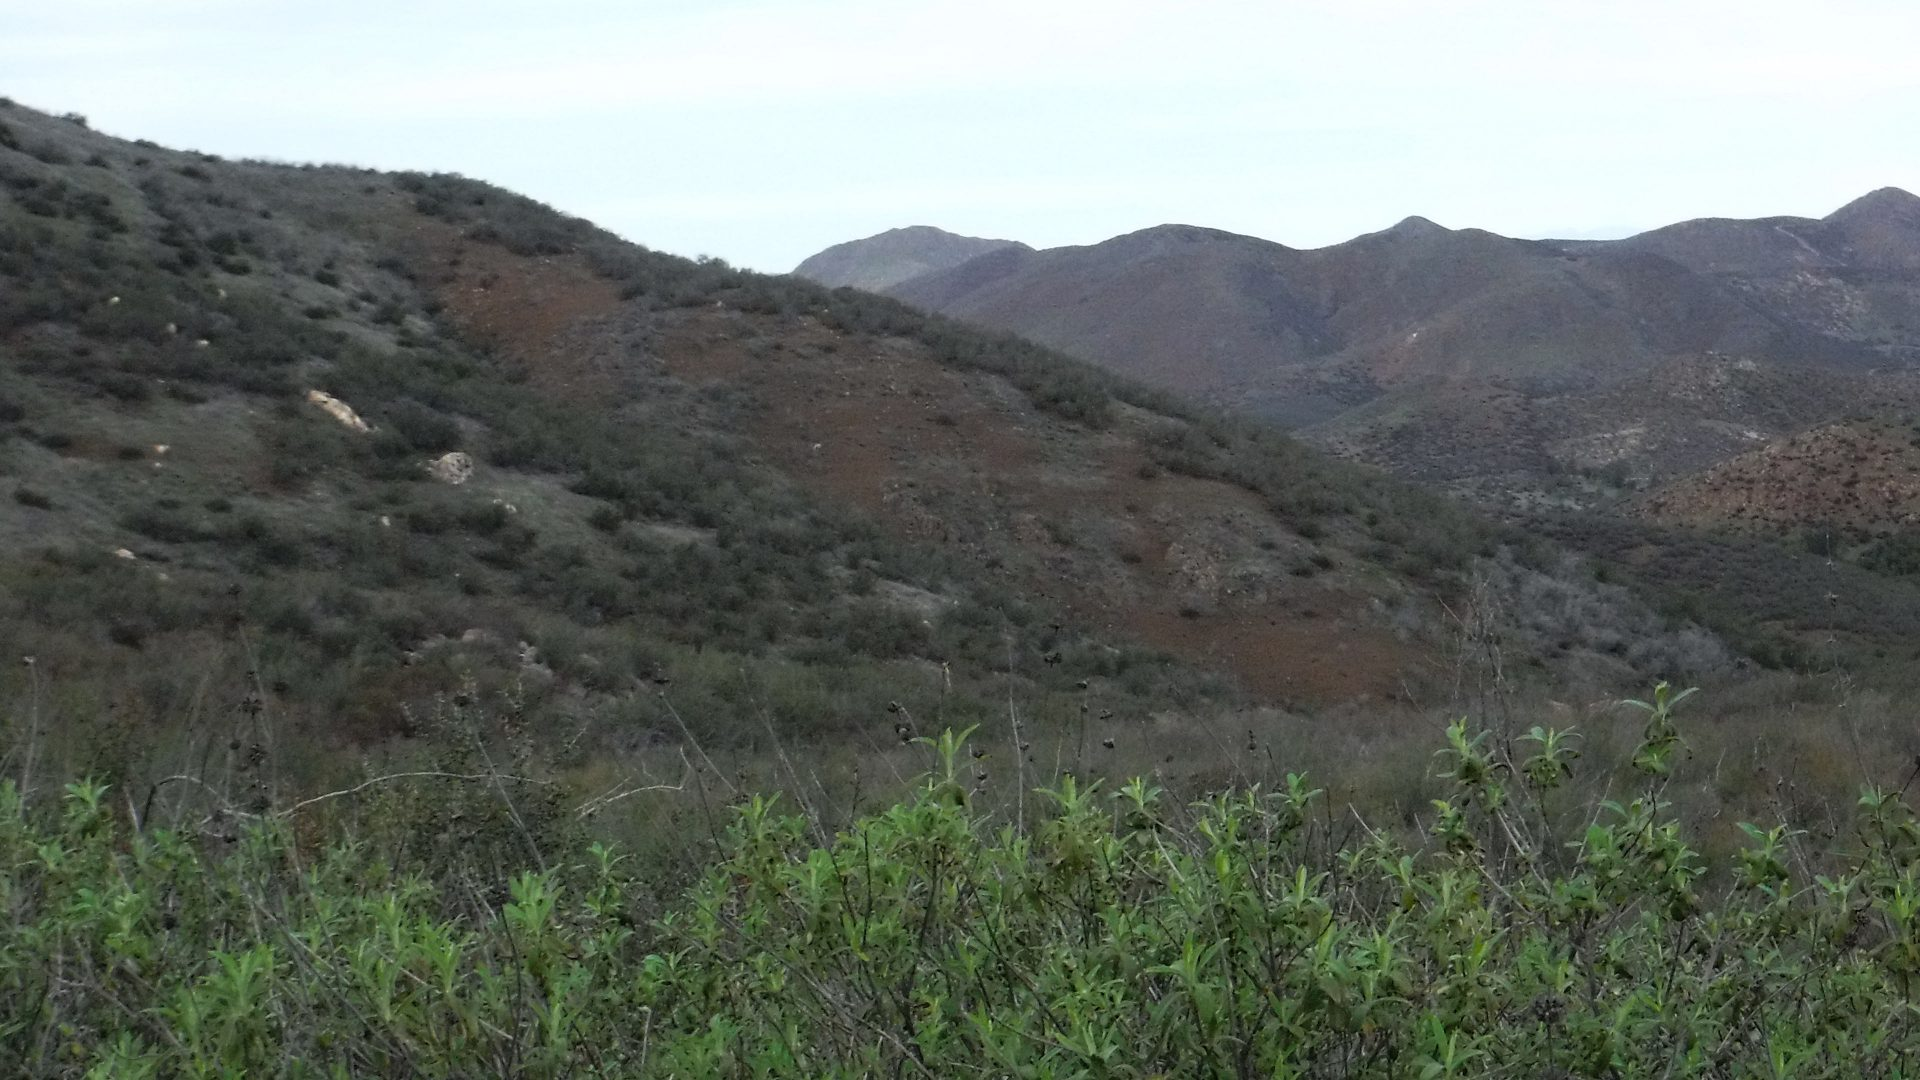 View of the side of a hill